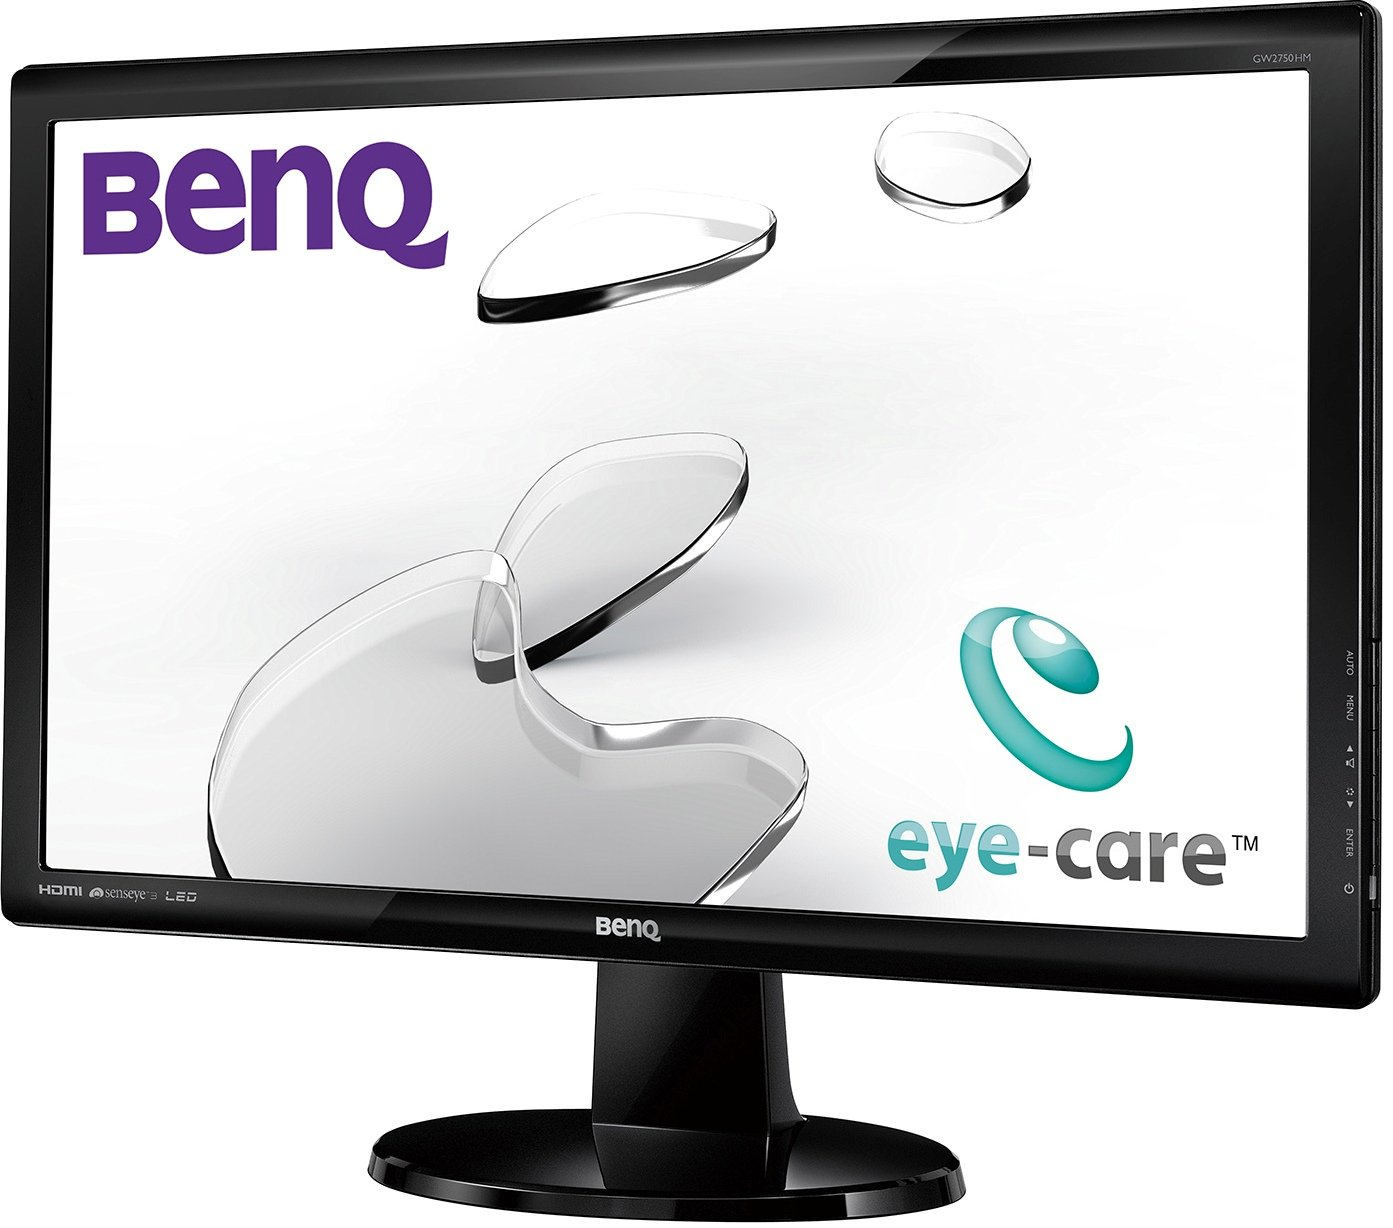 BENQ GW2750H DRIVERS FOR WINDOWS 7